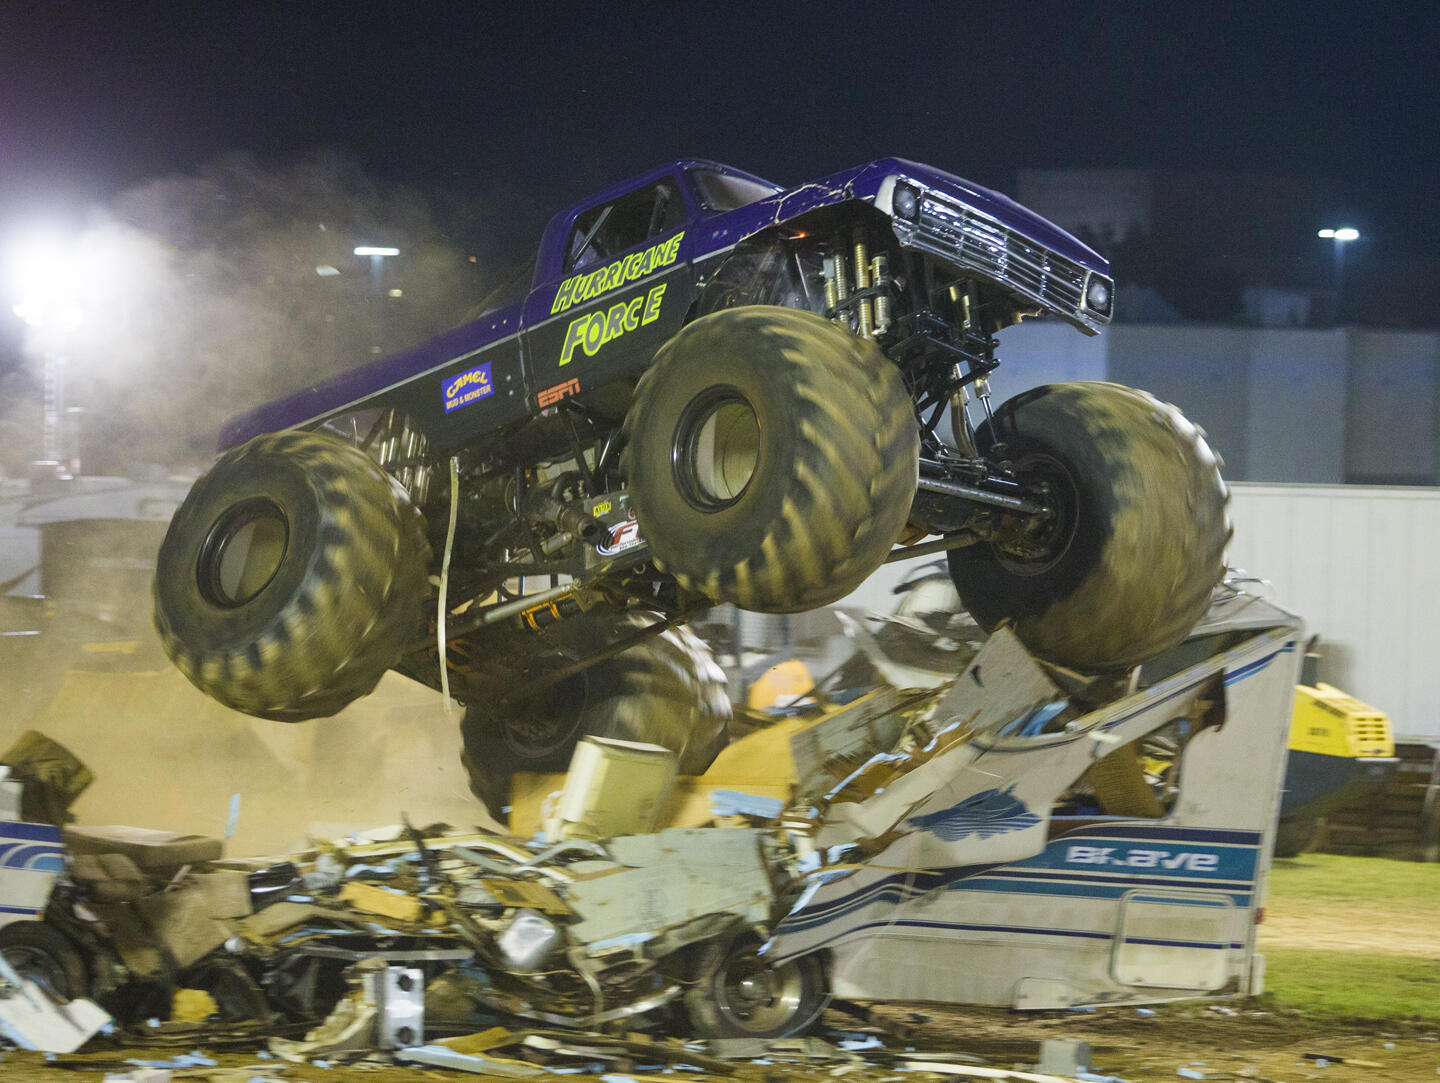 PHOTOS: Demolition Derby and Monster Truck Madness at MoCo Fair